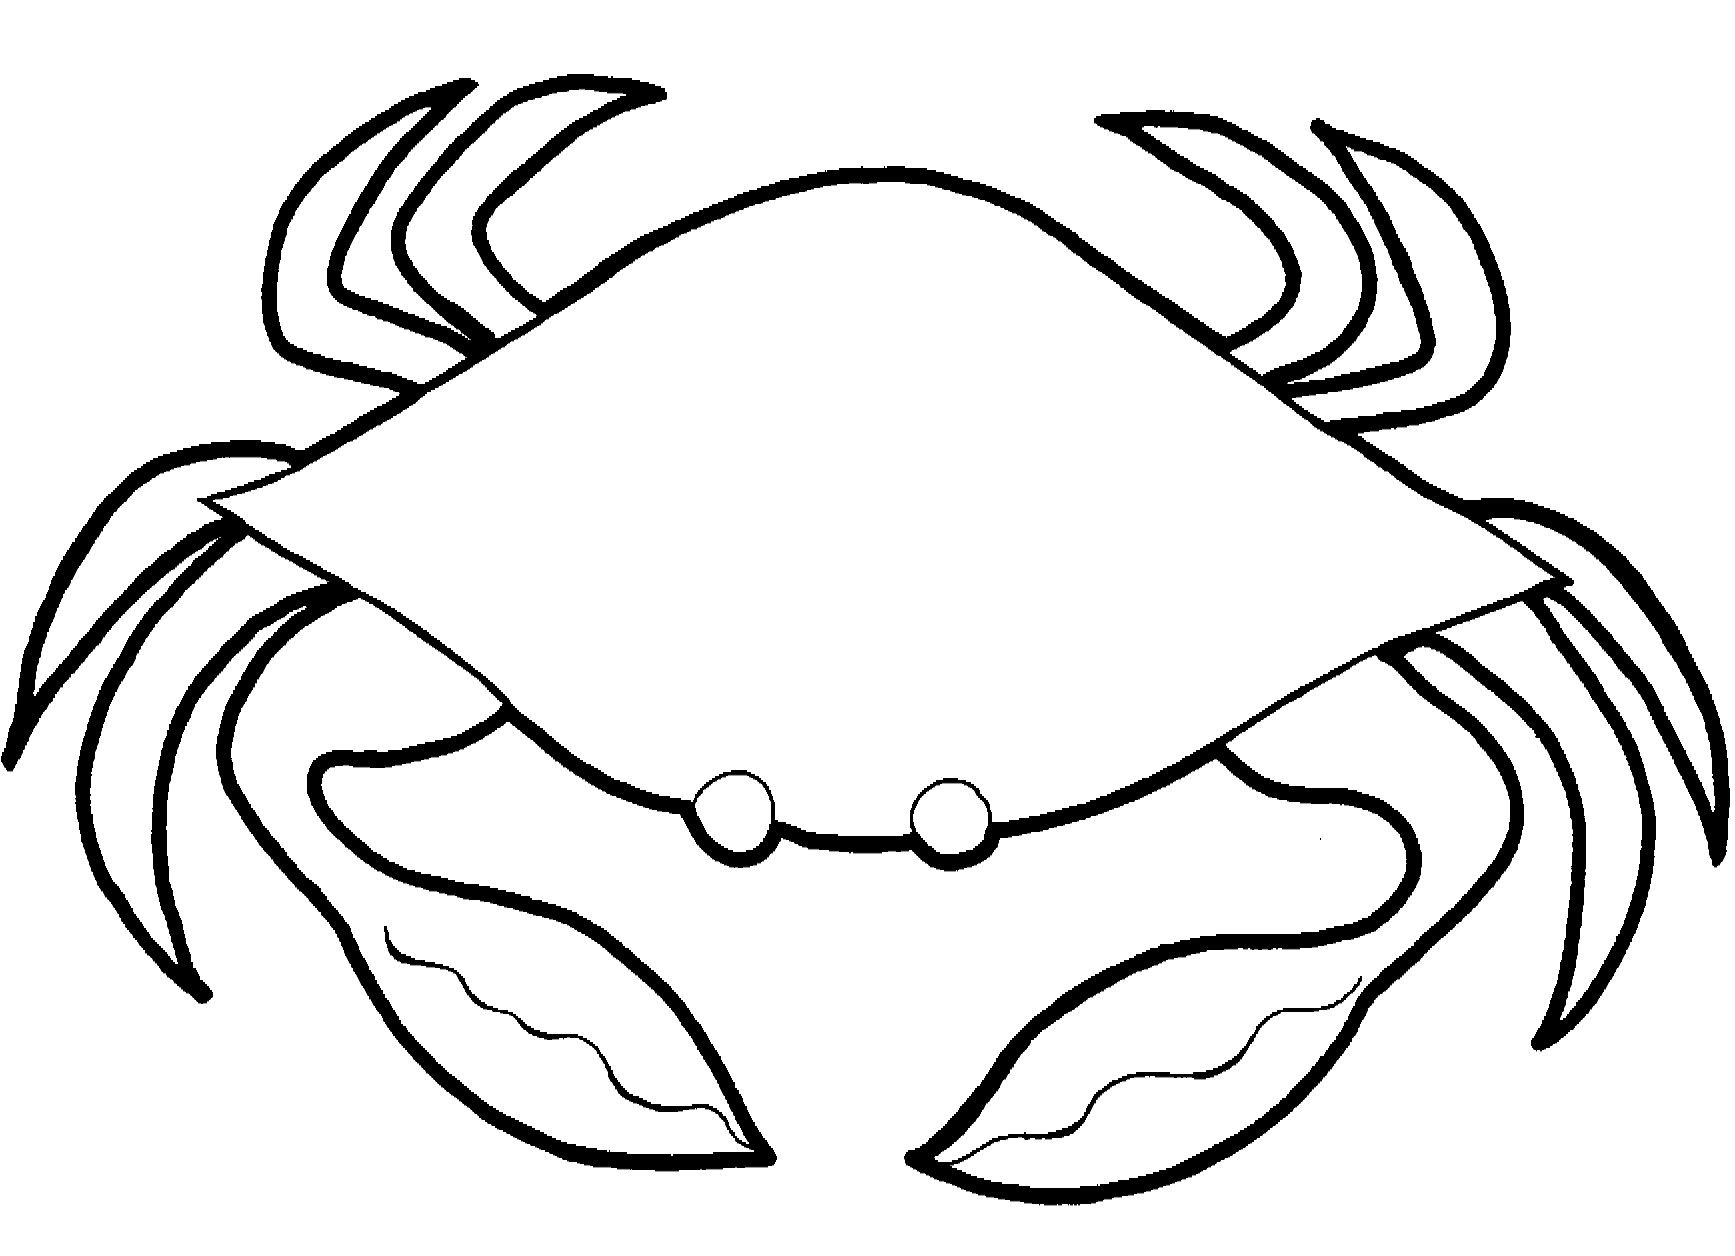 crab coloring pages free printable coloring pages simple c - Printable Coloring Pages Kids